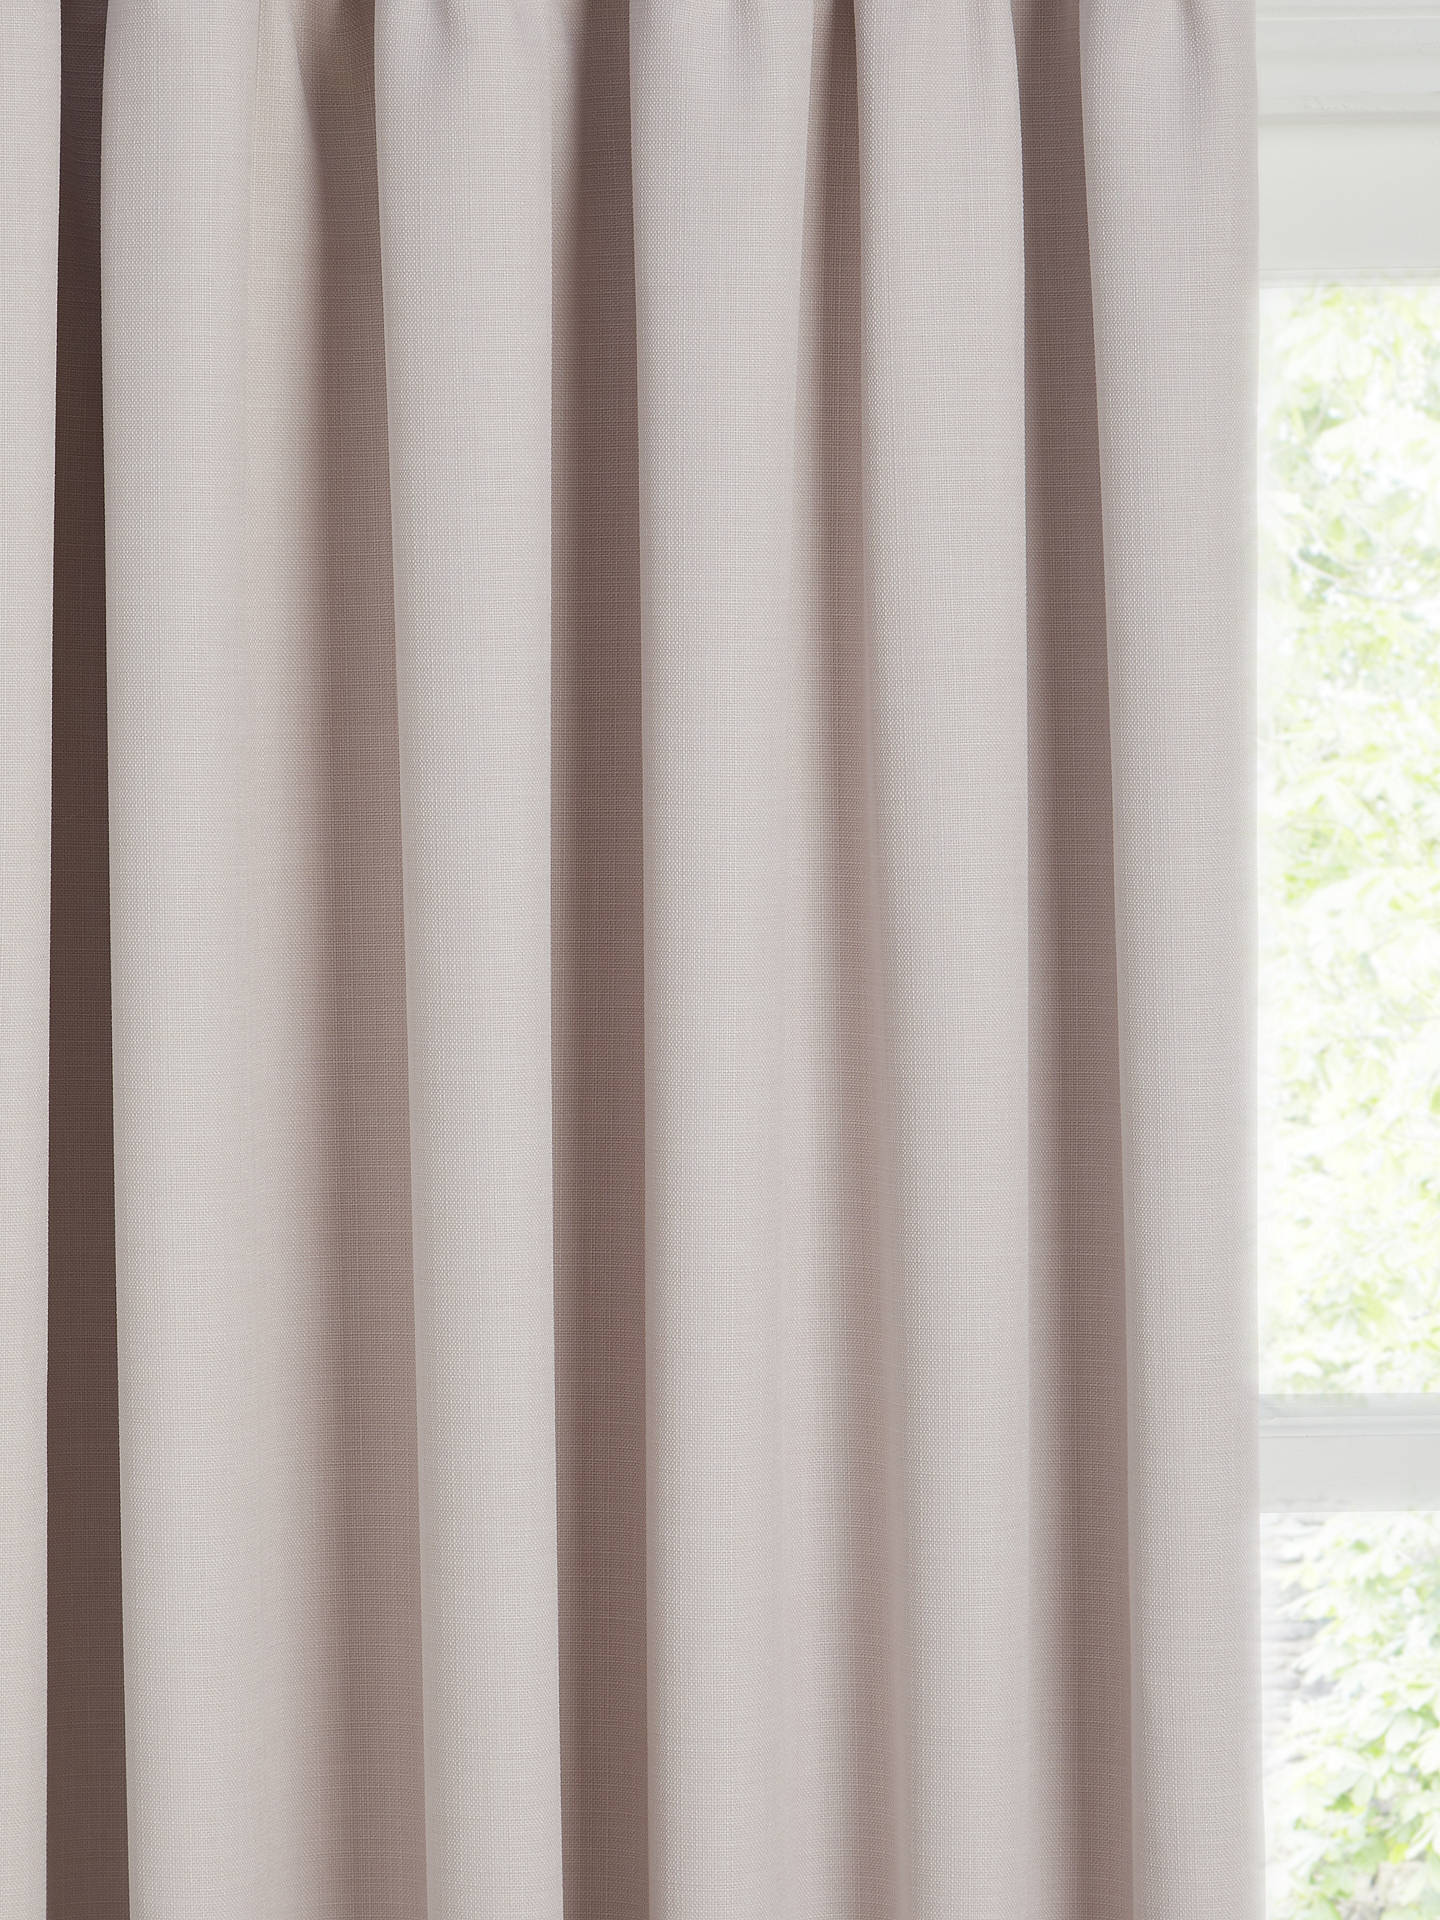 Buy John Lewis & Partners Barathea Pair Blackout Lined Pencil Pleat Curtains, Wisteria, W228 x Drop 274cm Online at johnlewis.com